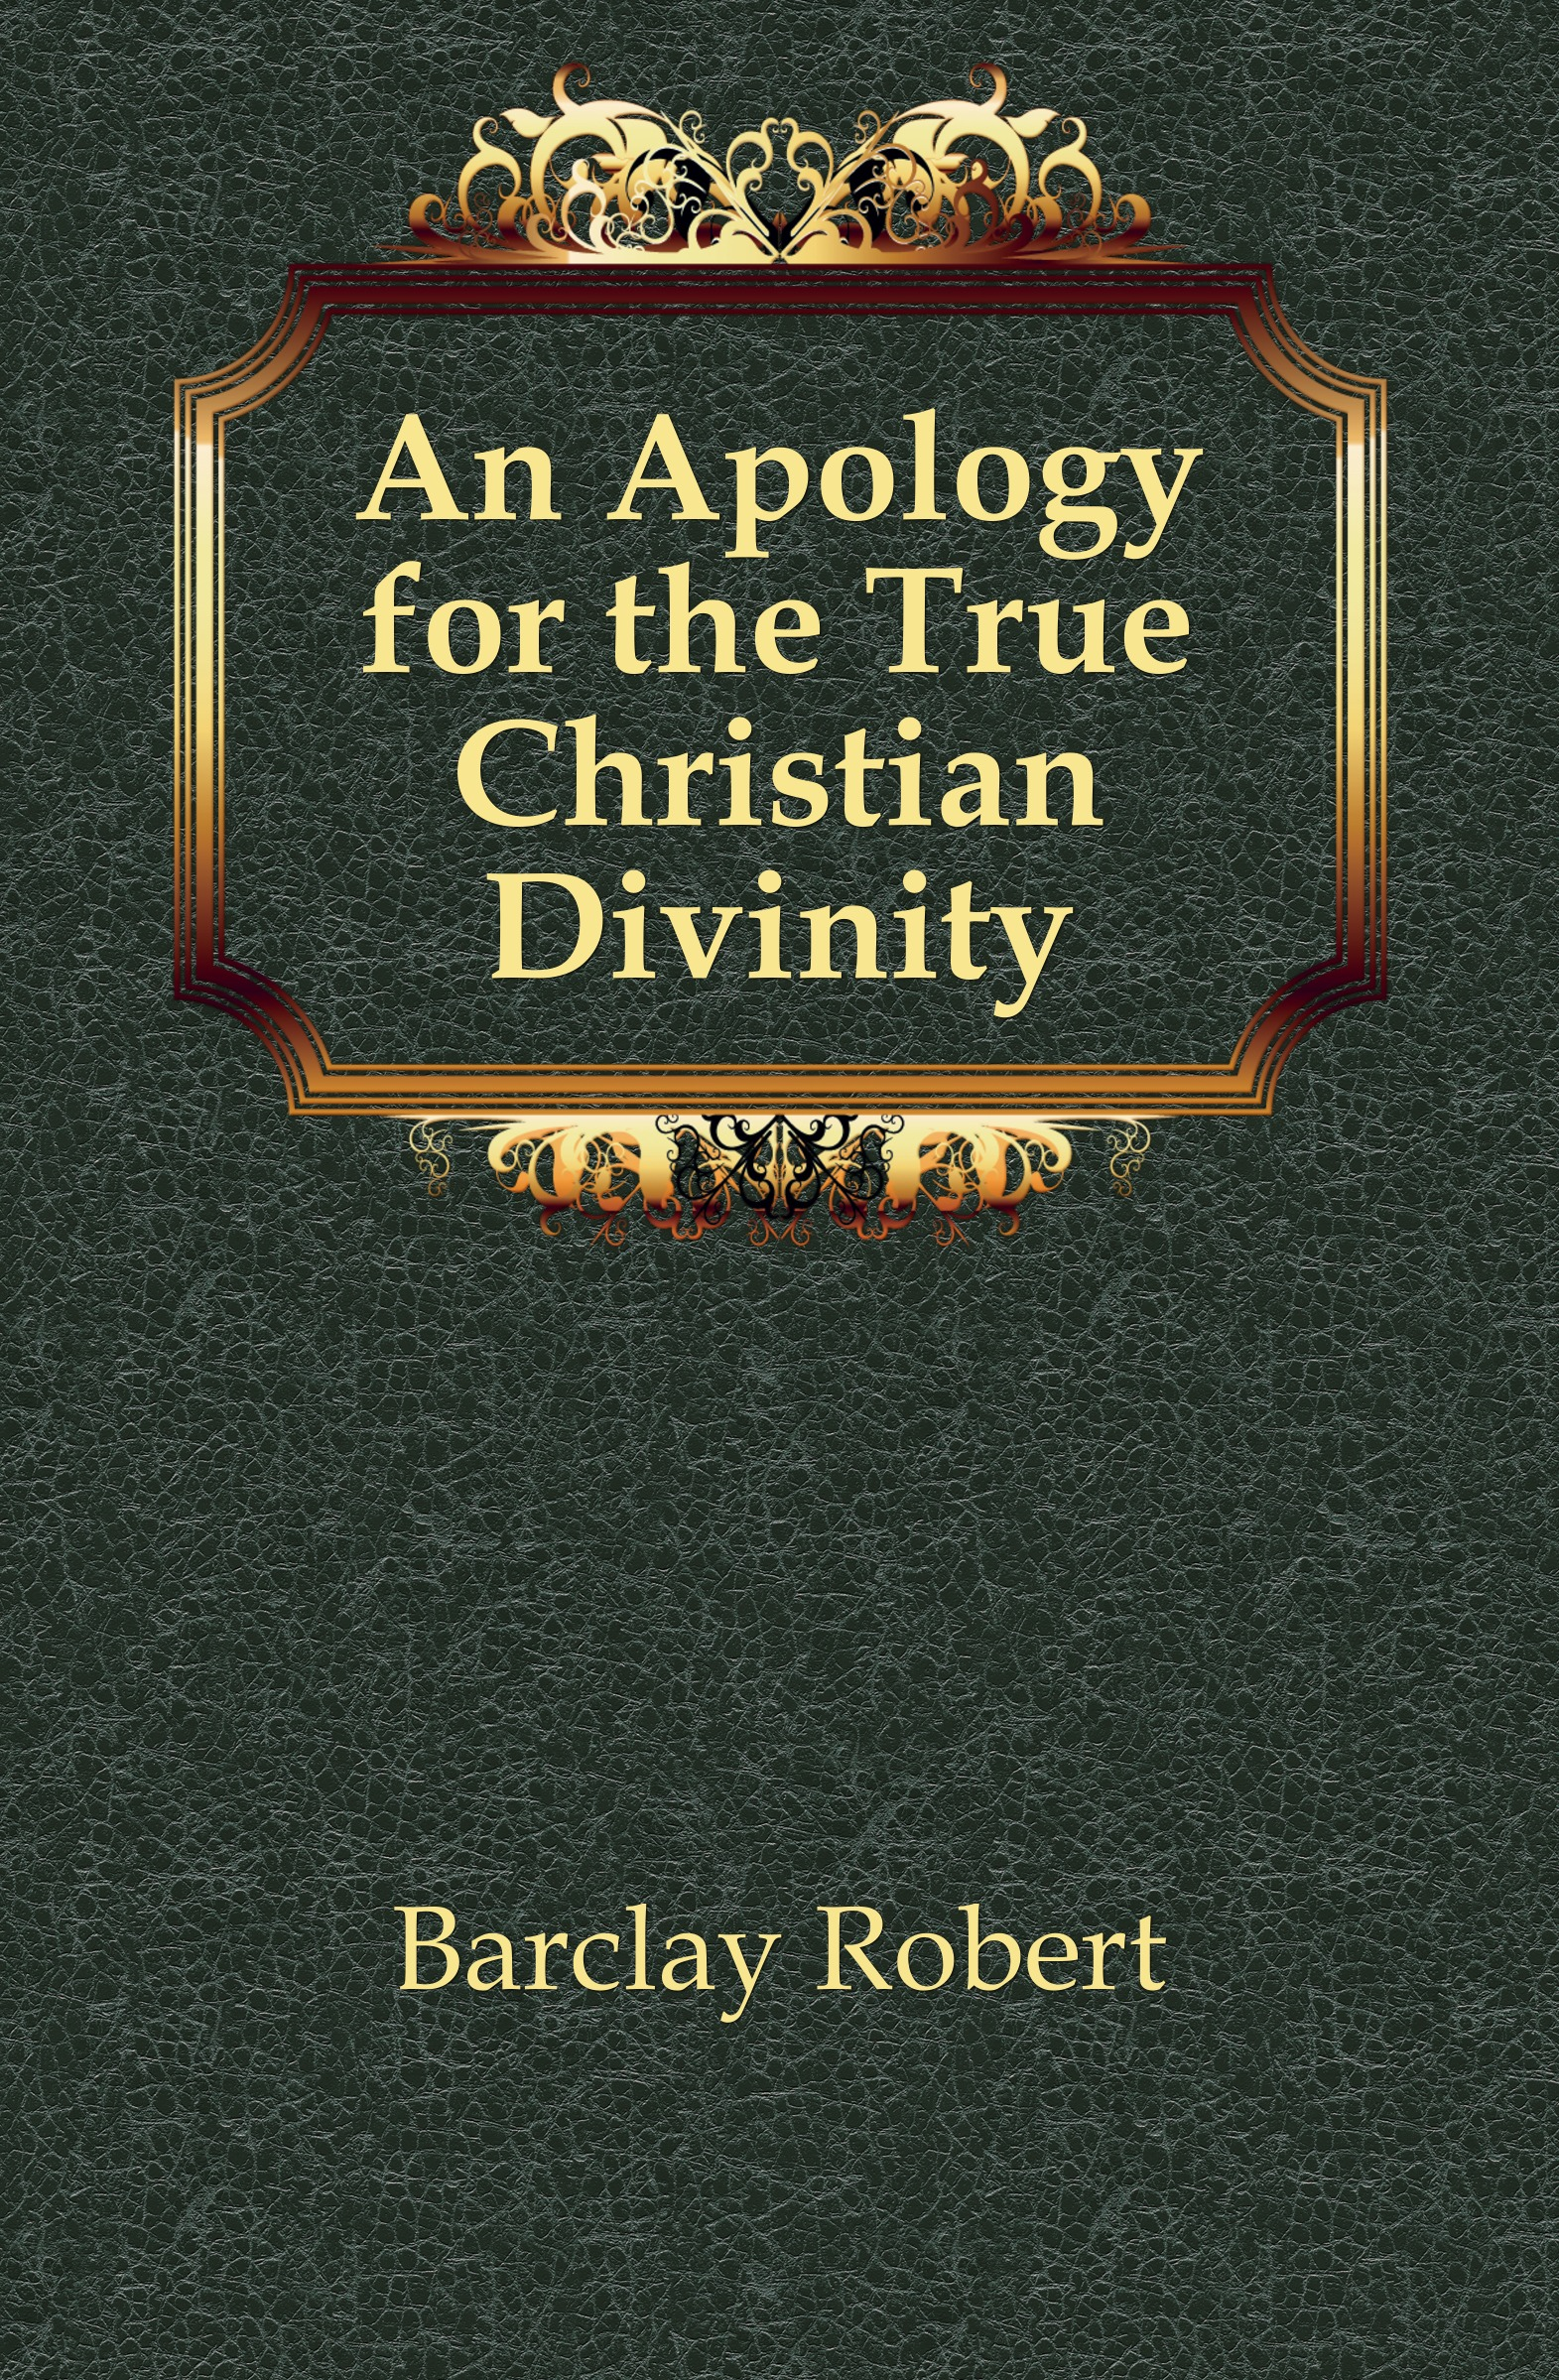 Barclay Robert An Apology for the True Christian Divinity robert barclay an apology for the true christian divinity